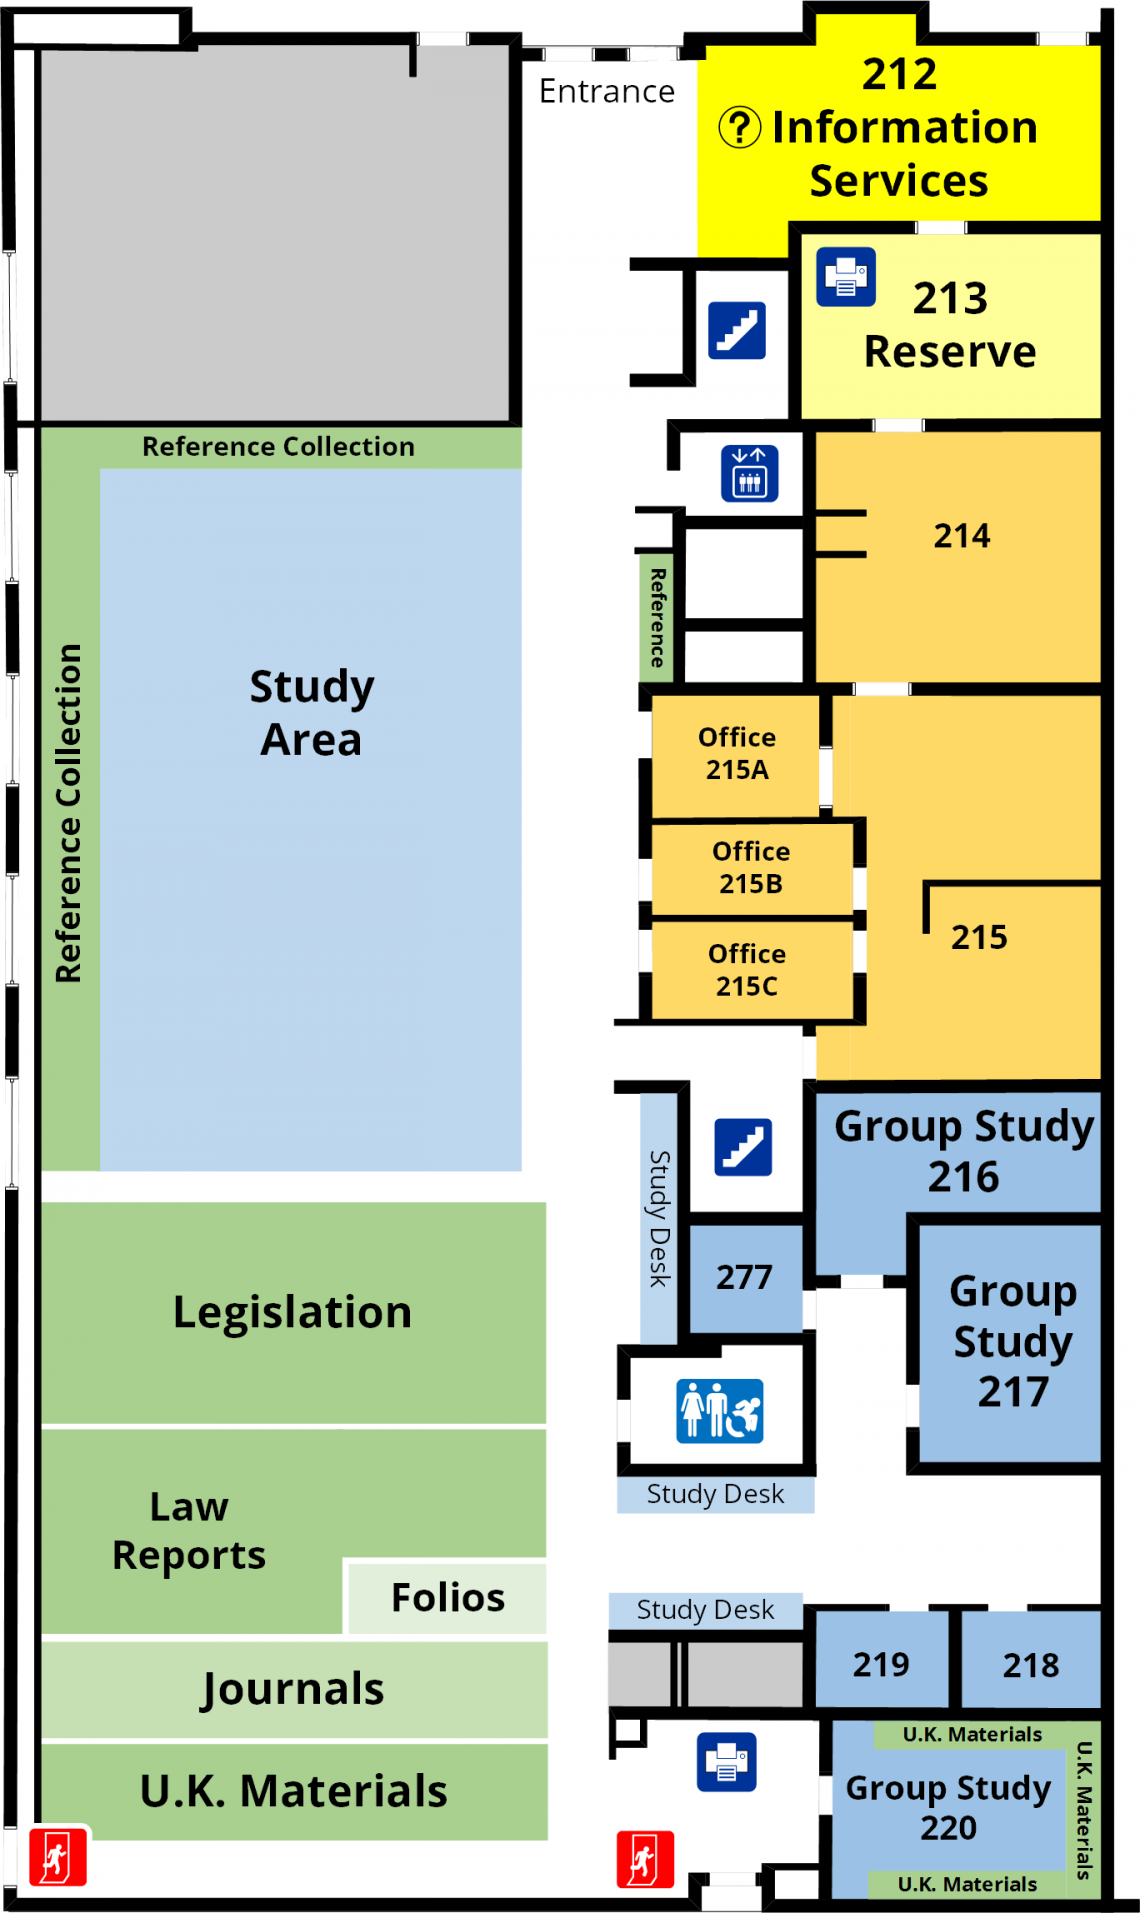 Lederman Law Library First Floor Floorplan